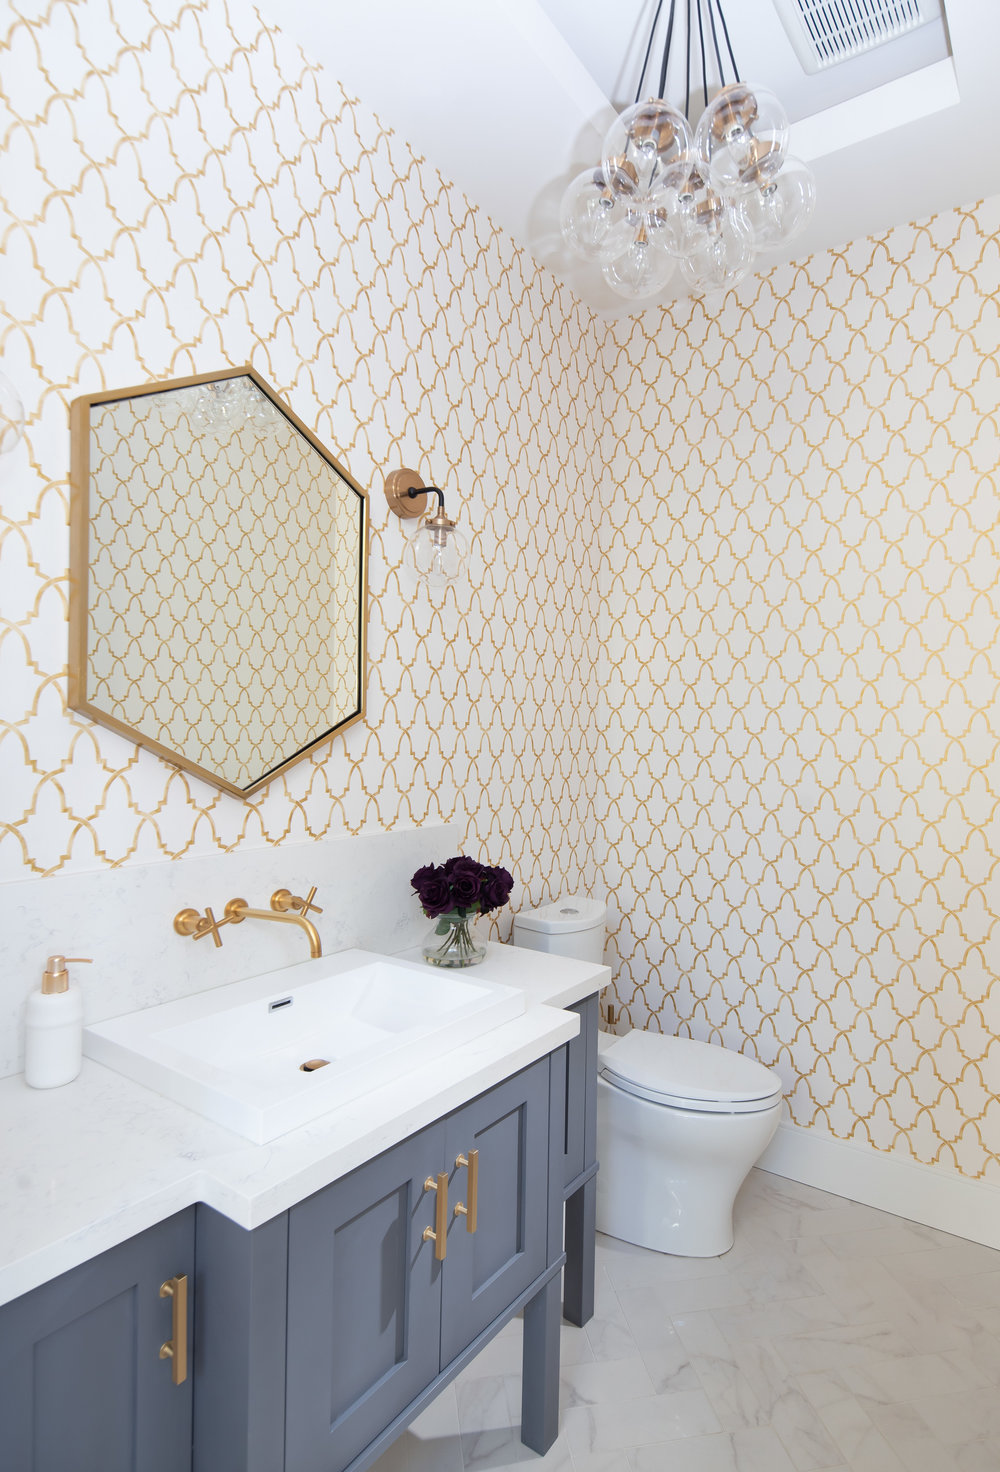 powder room with gold faucet